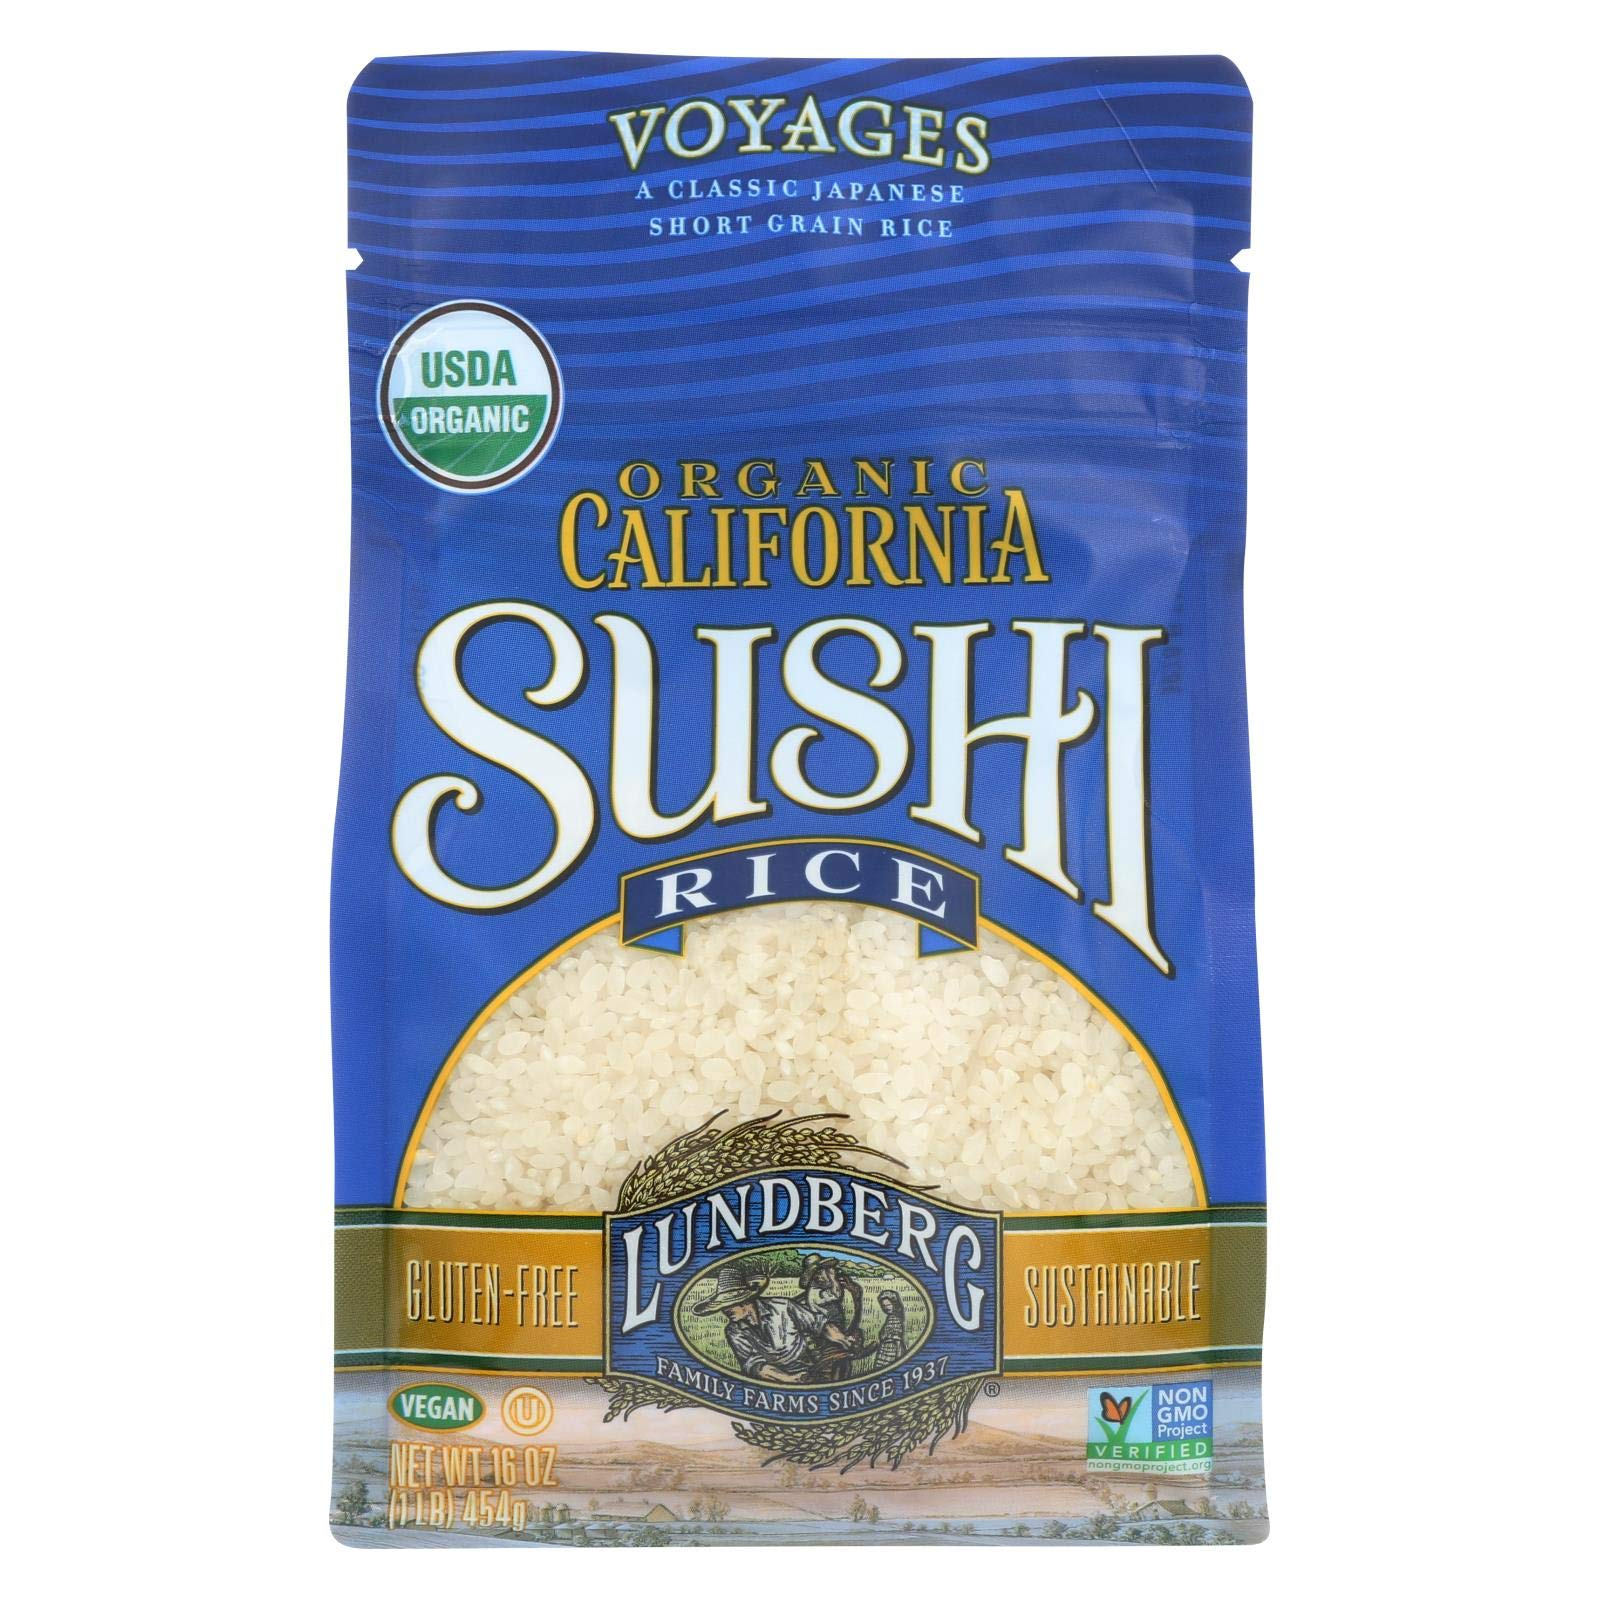 Organic California Sushi Rice 1 Pounds (Case of 6) by Lundberg